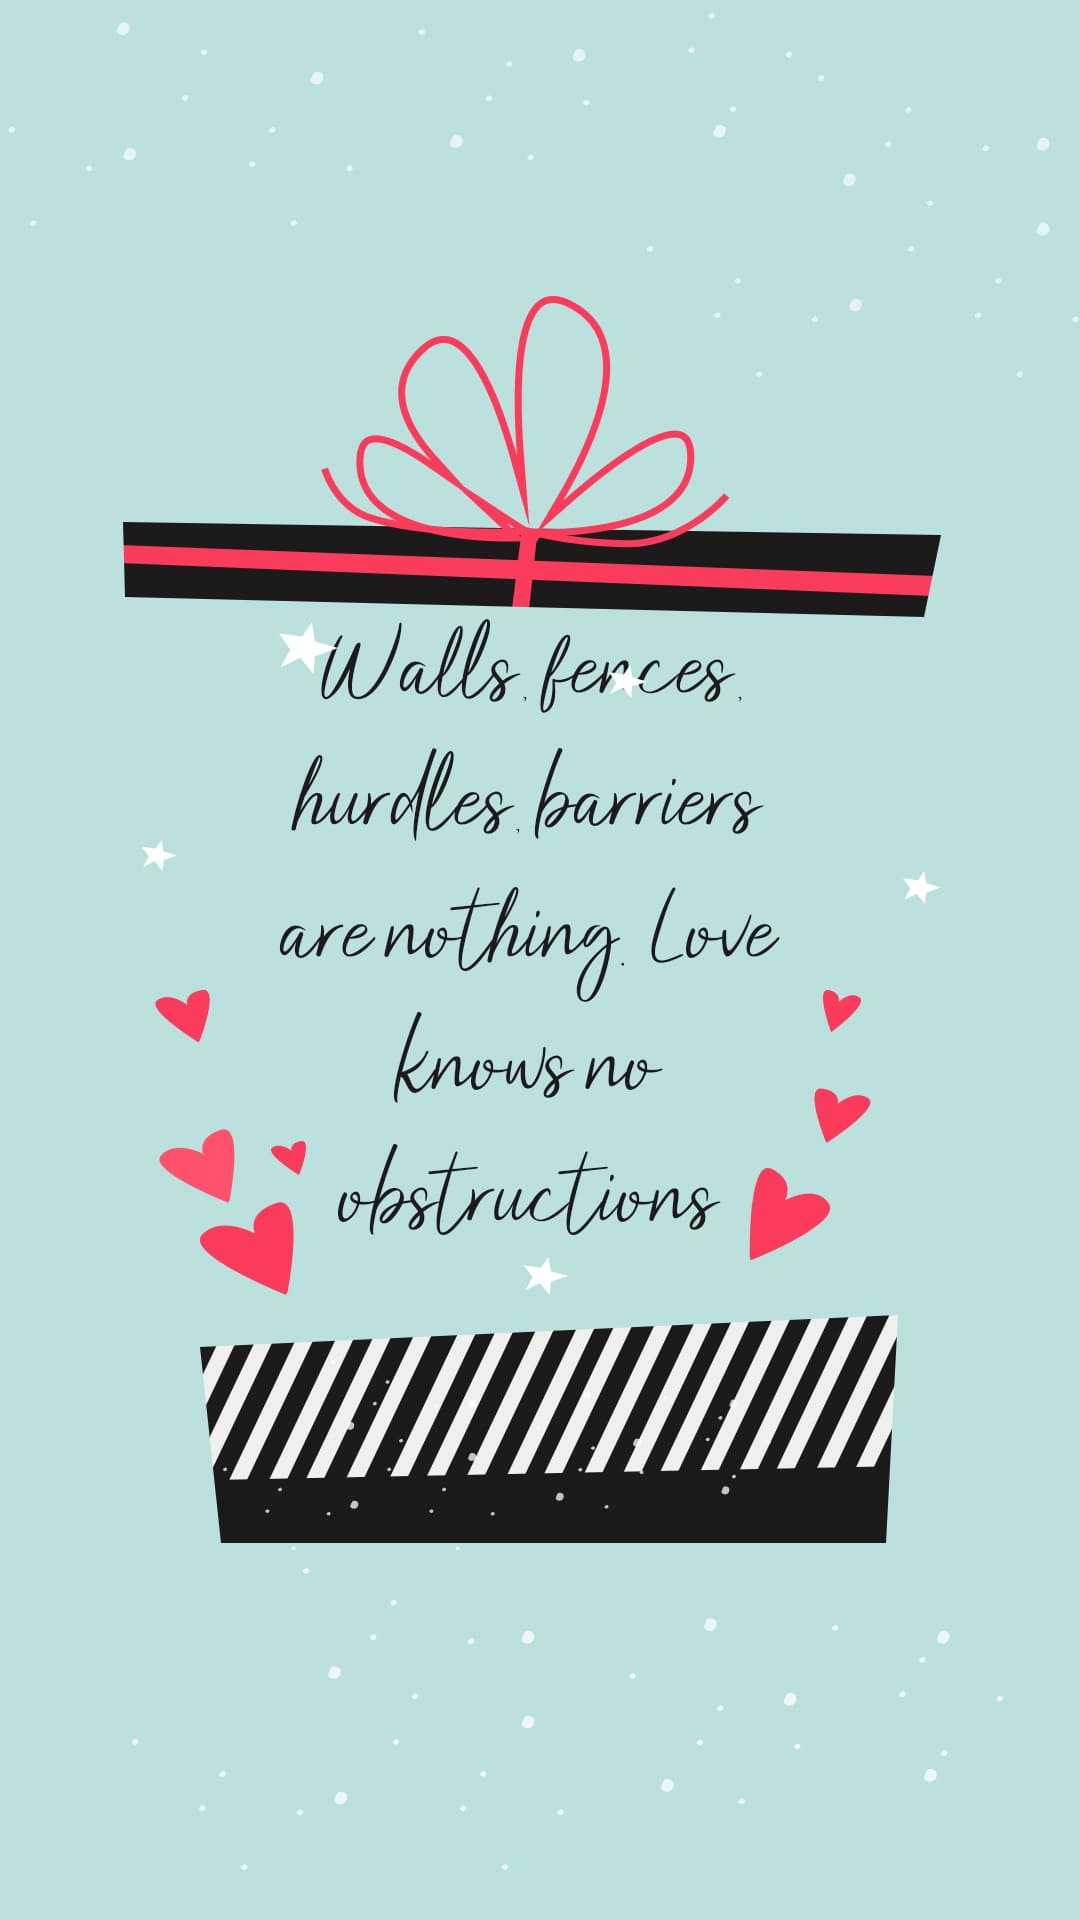 Walls, fences, hurdles, barriers are nothing. Love knows no obstructions.